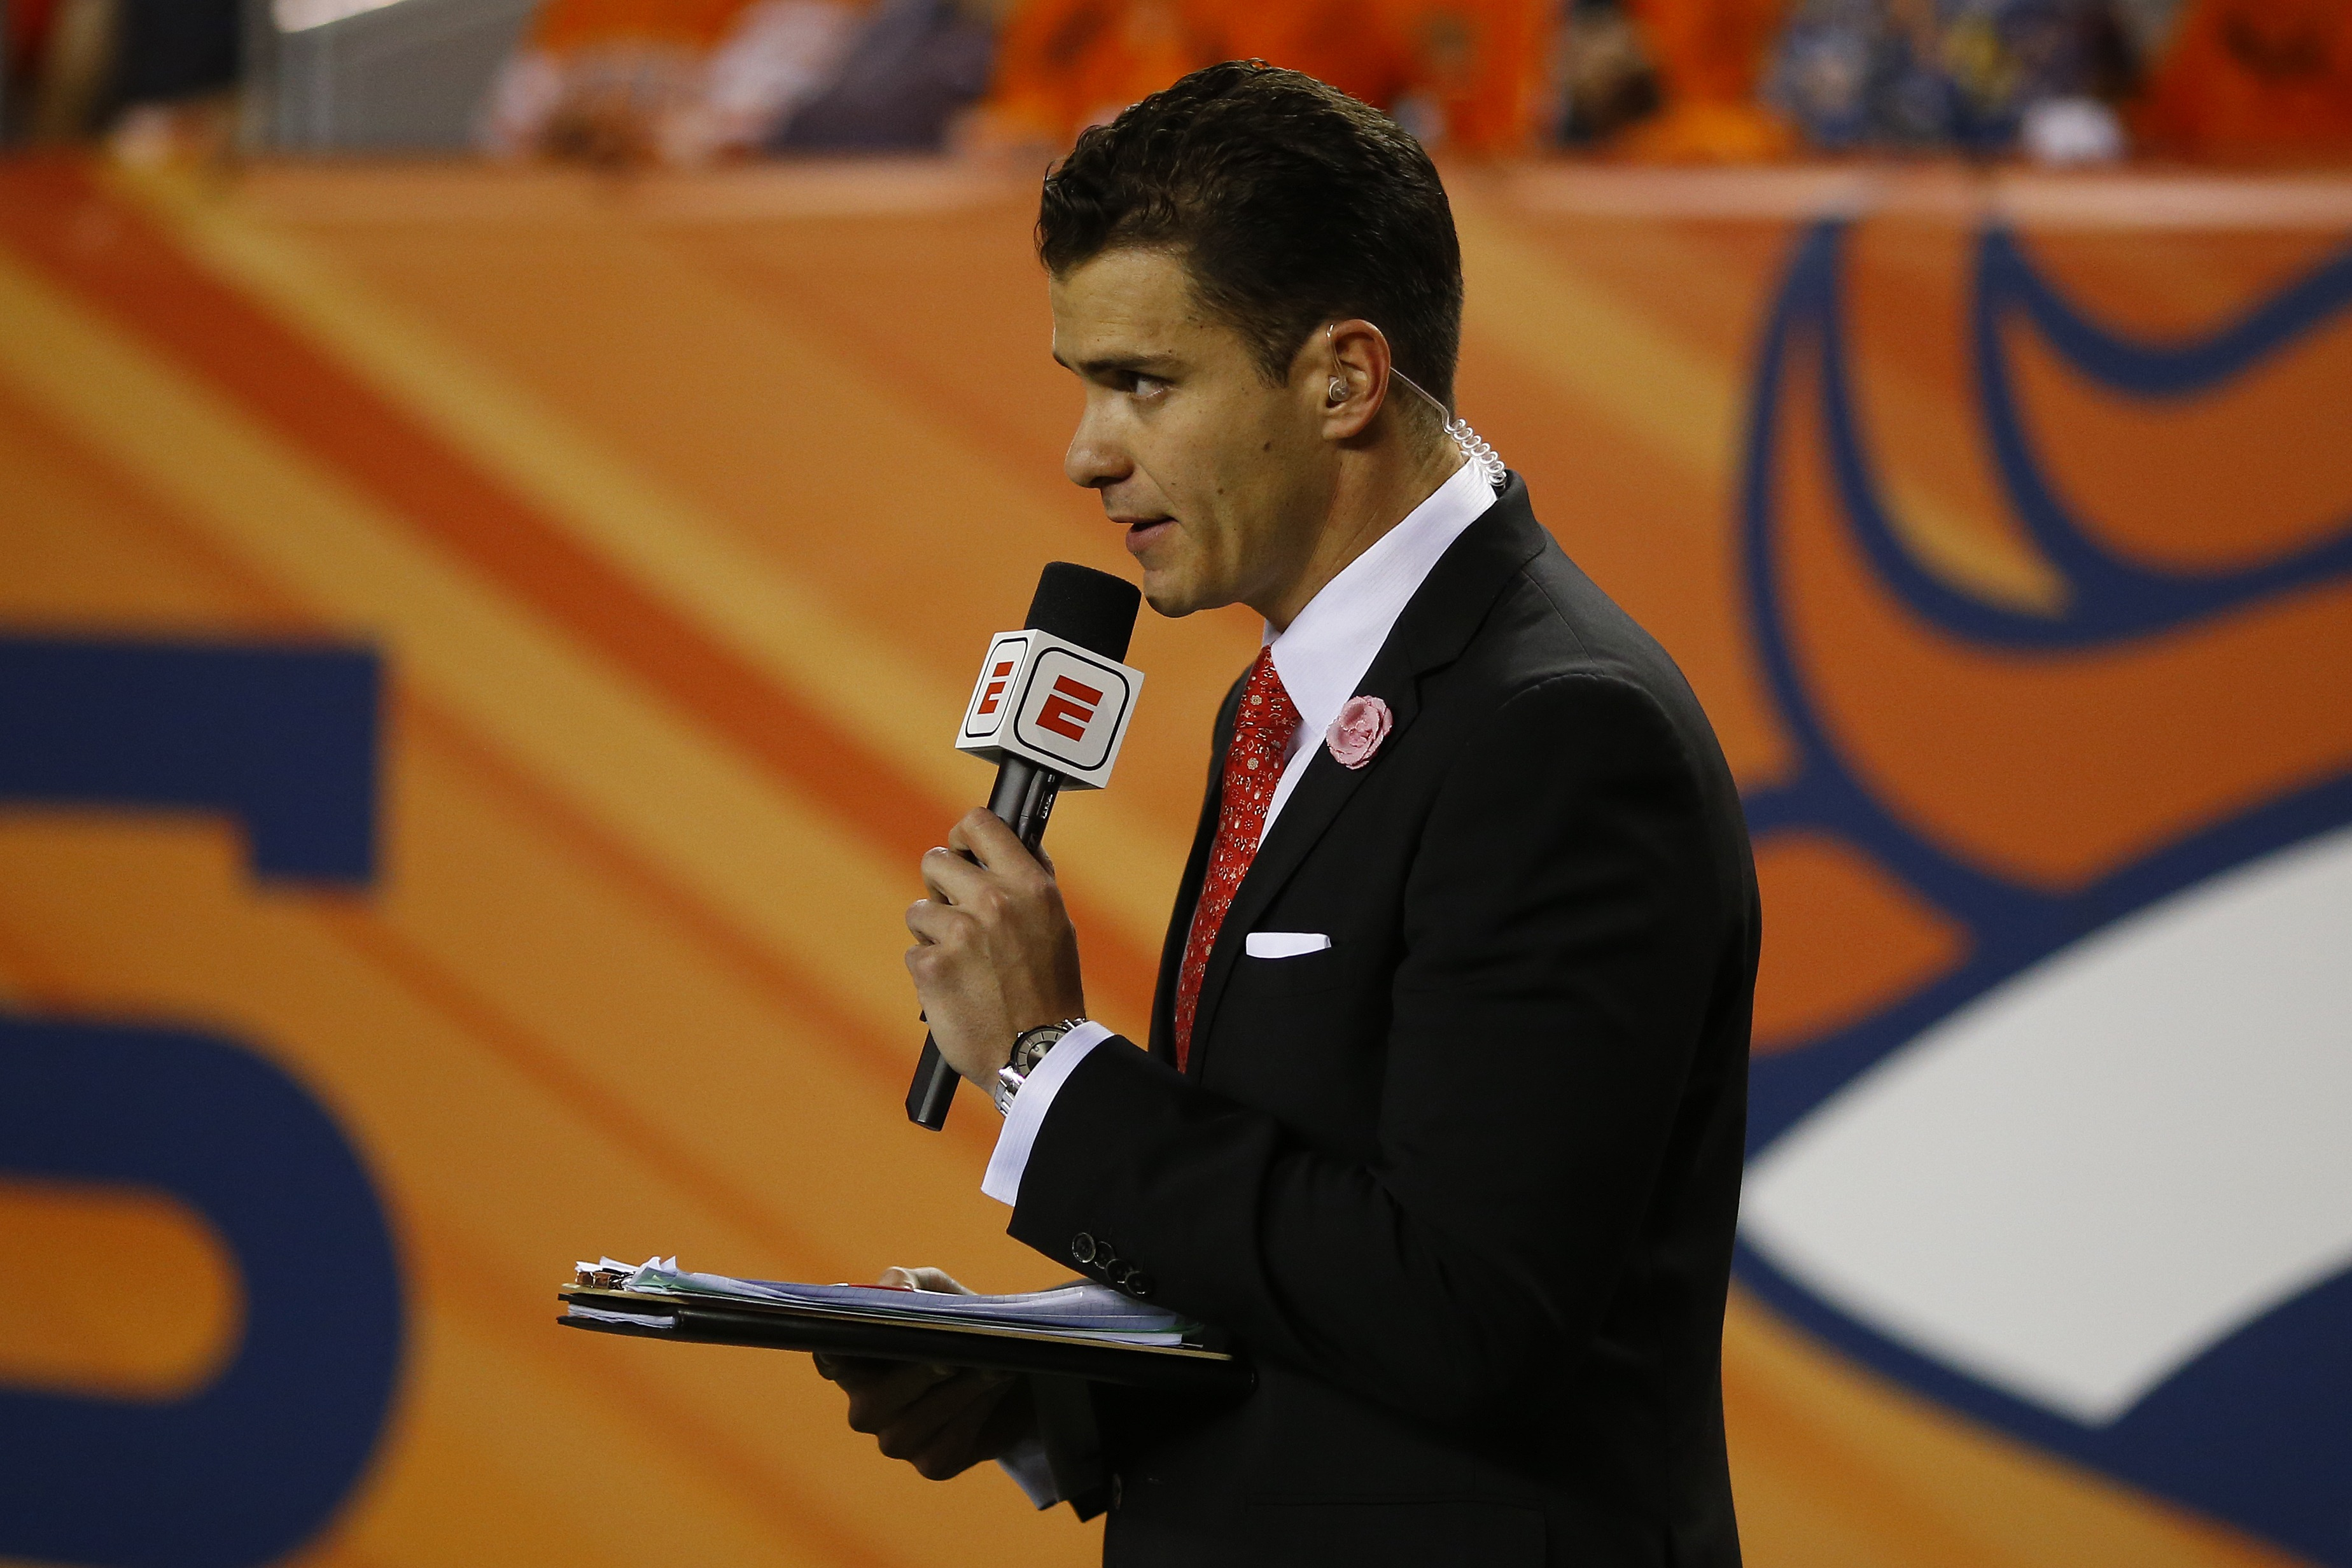 After Getting Roasted For an Awkward Sideline Report, ESPN's Sergio Dipp Handles New Fame With Grace